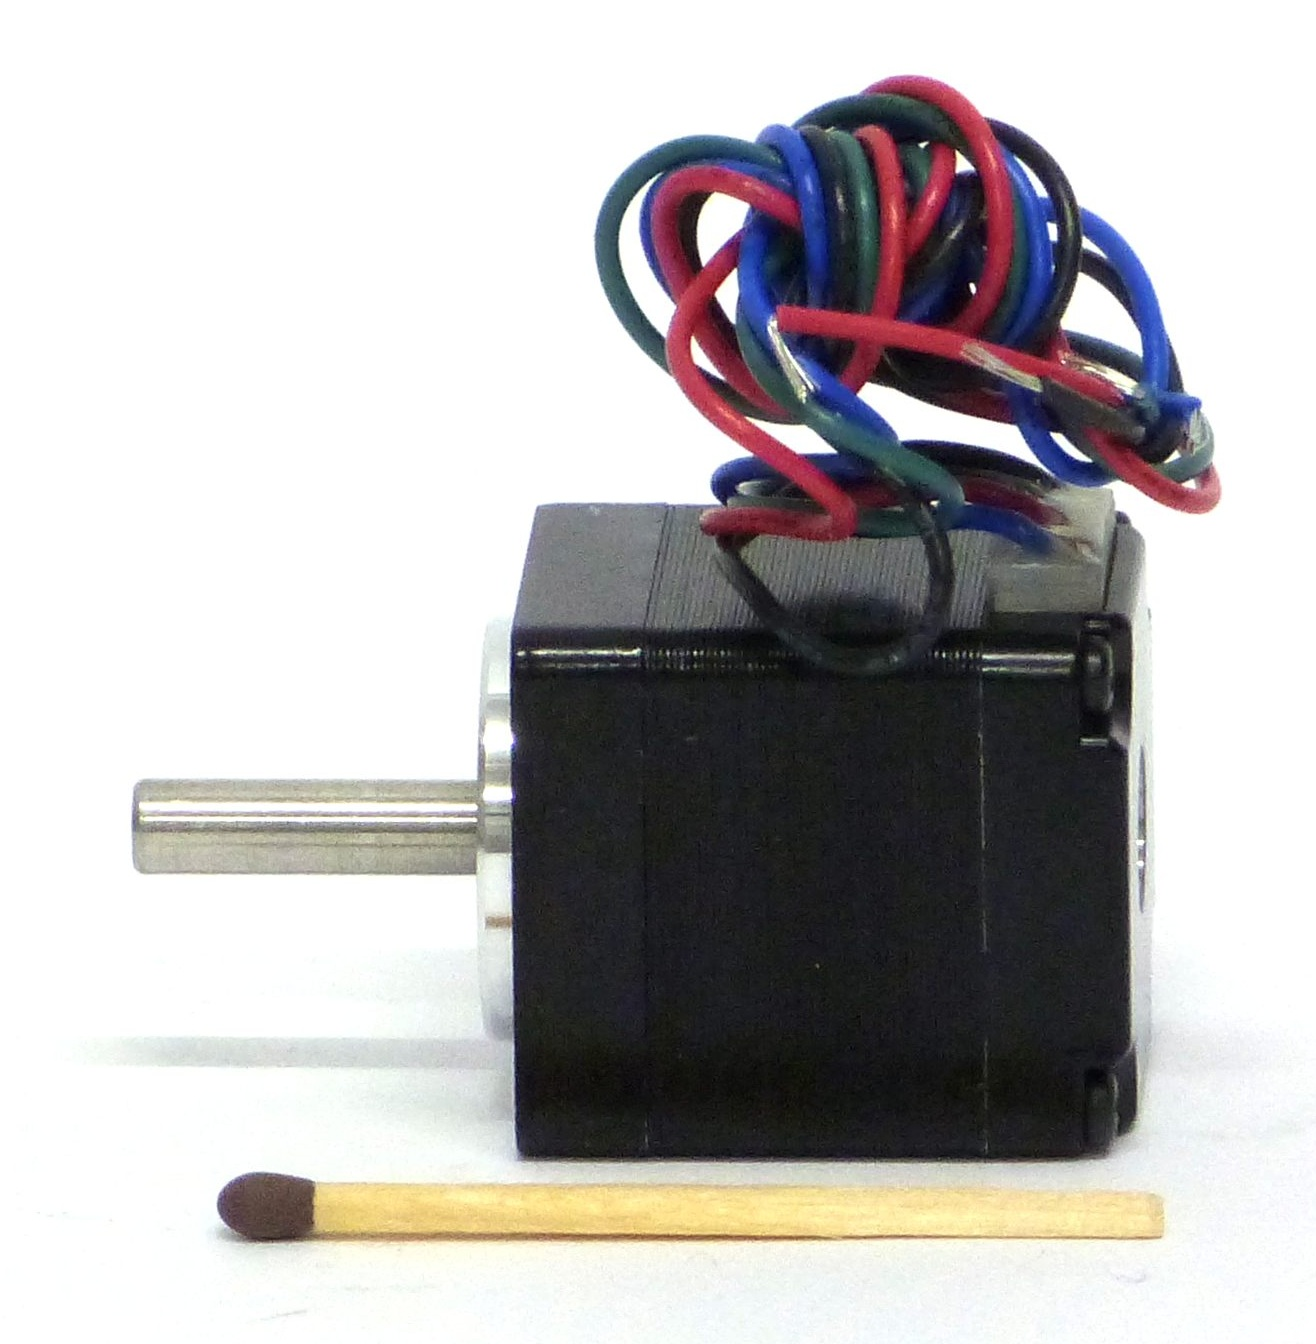 Inside look of a mini stepper motor from danish company JVL